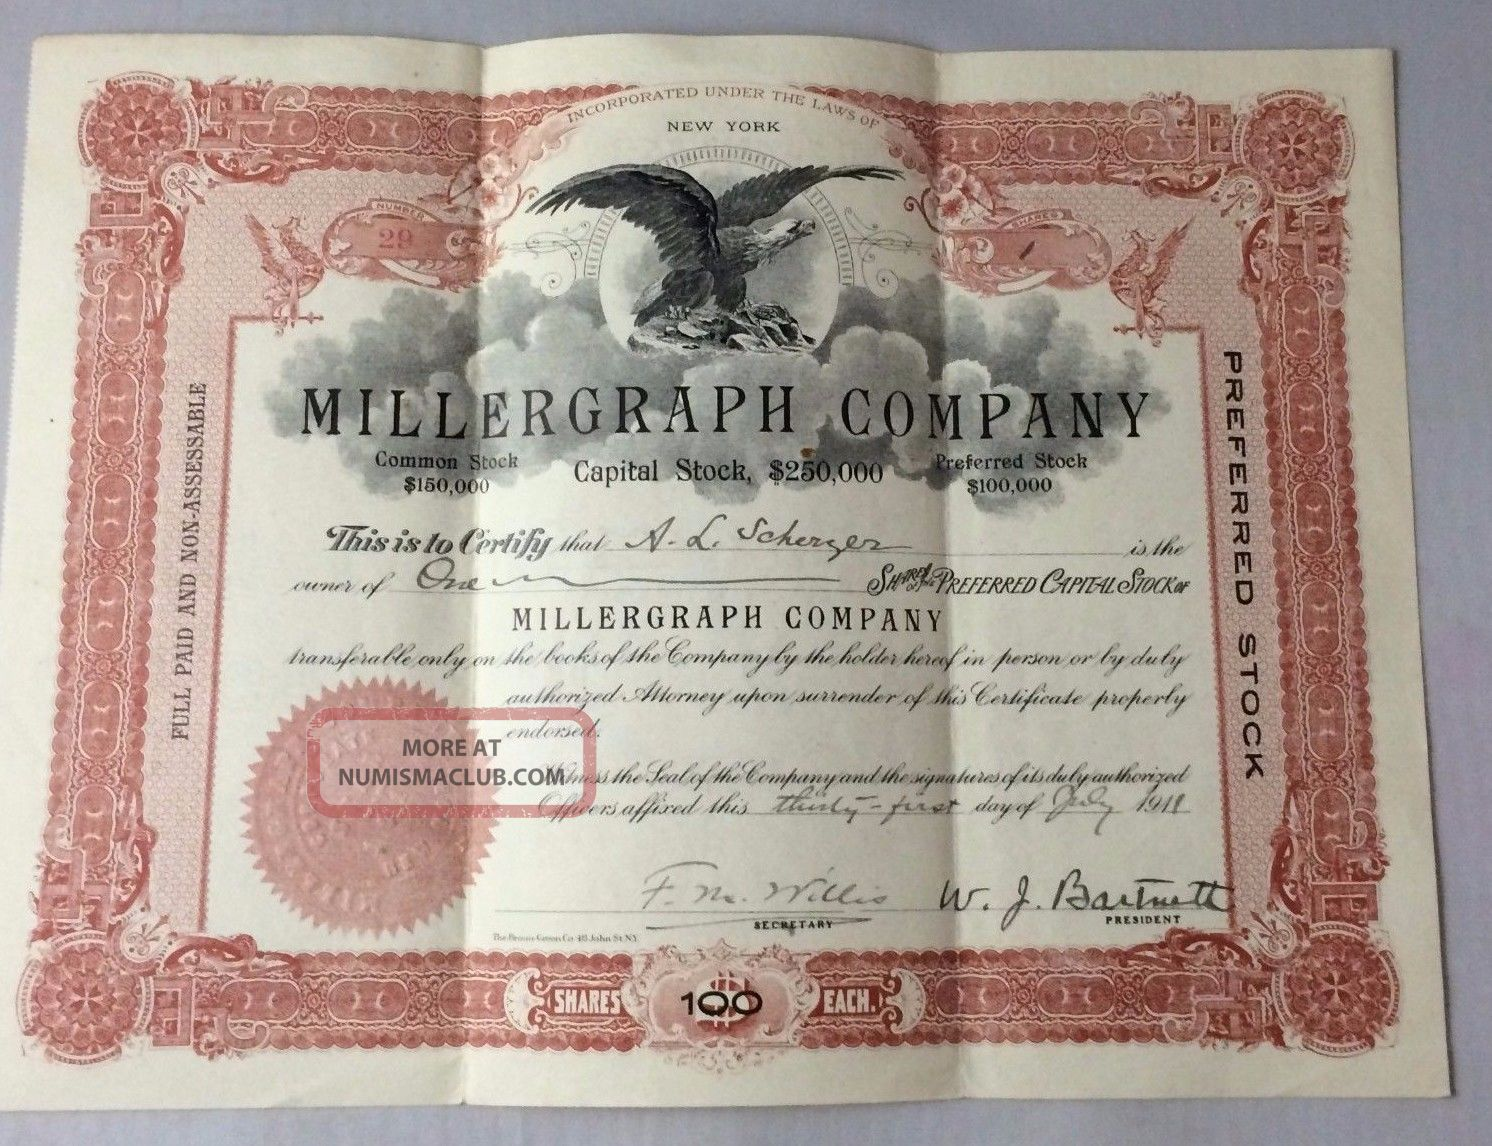 Millergraph Company 1911 Stock Certificate A.  L.  Scherzer 100 Shares Stocks & Bonds, Scripophily photo